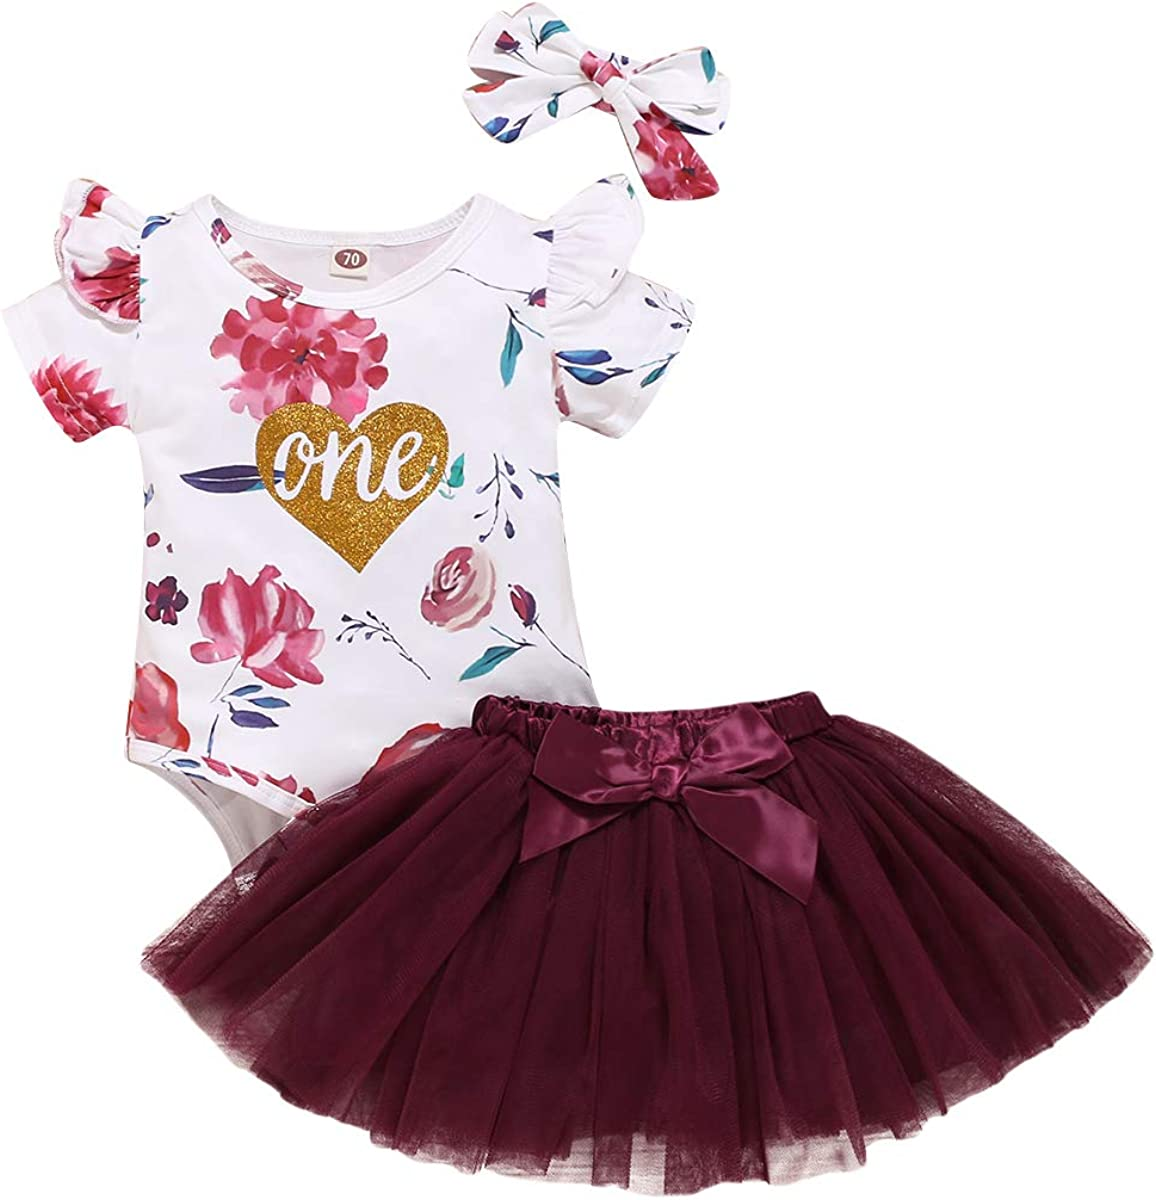 Baby Girl 1st Birthday One Outfits Short Sleeve Floral Heart Romper+Tutu Skirt Headband Summer Clothes